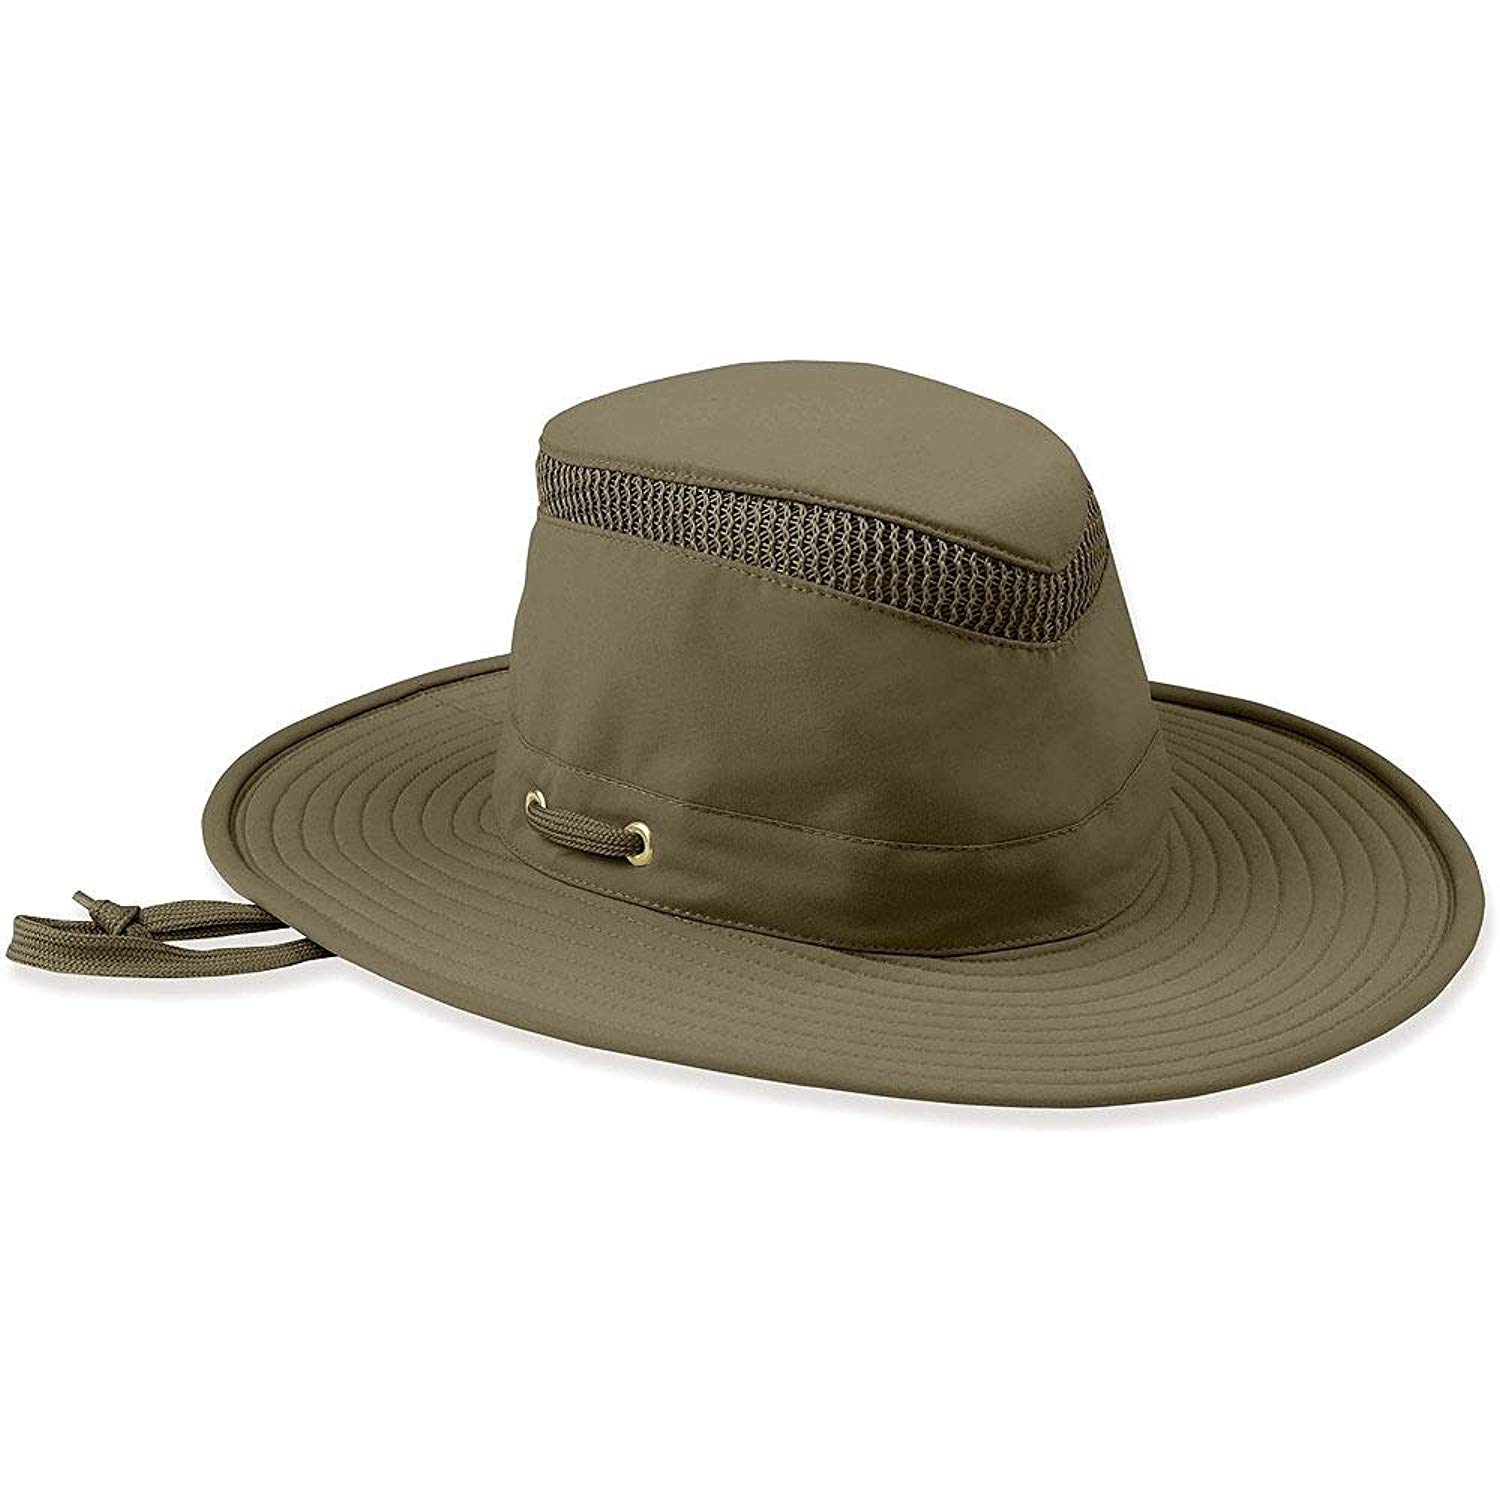 a85cfa2949c68 Get Quotations · Men s Tilley LTM6 Airflo Supplex Hats - OLIVE (size  7 ...